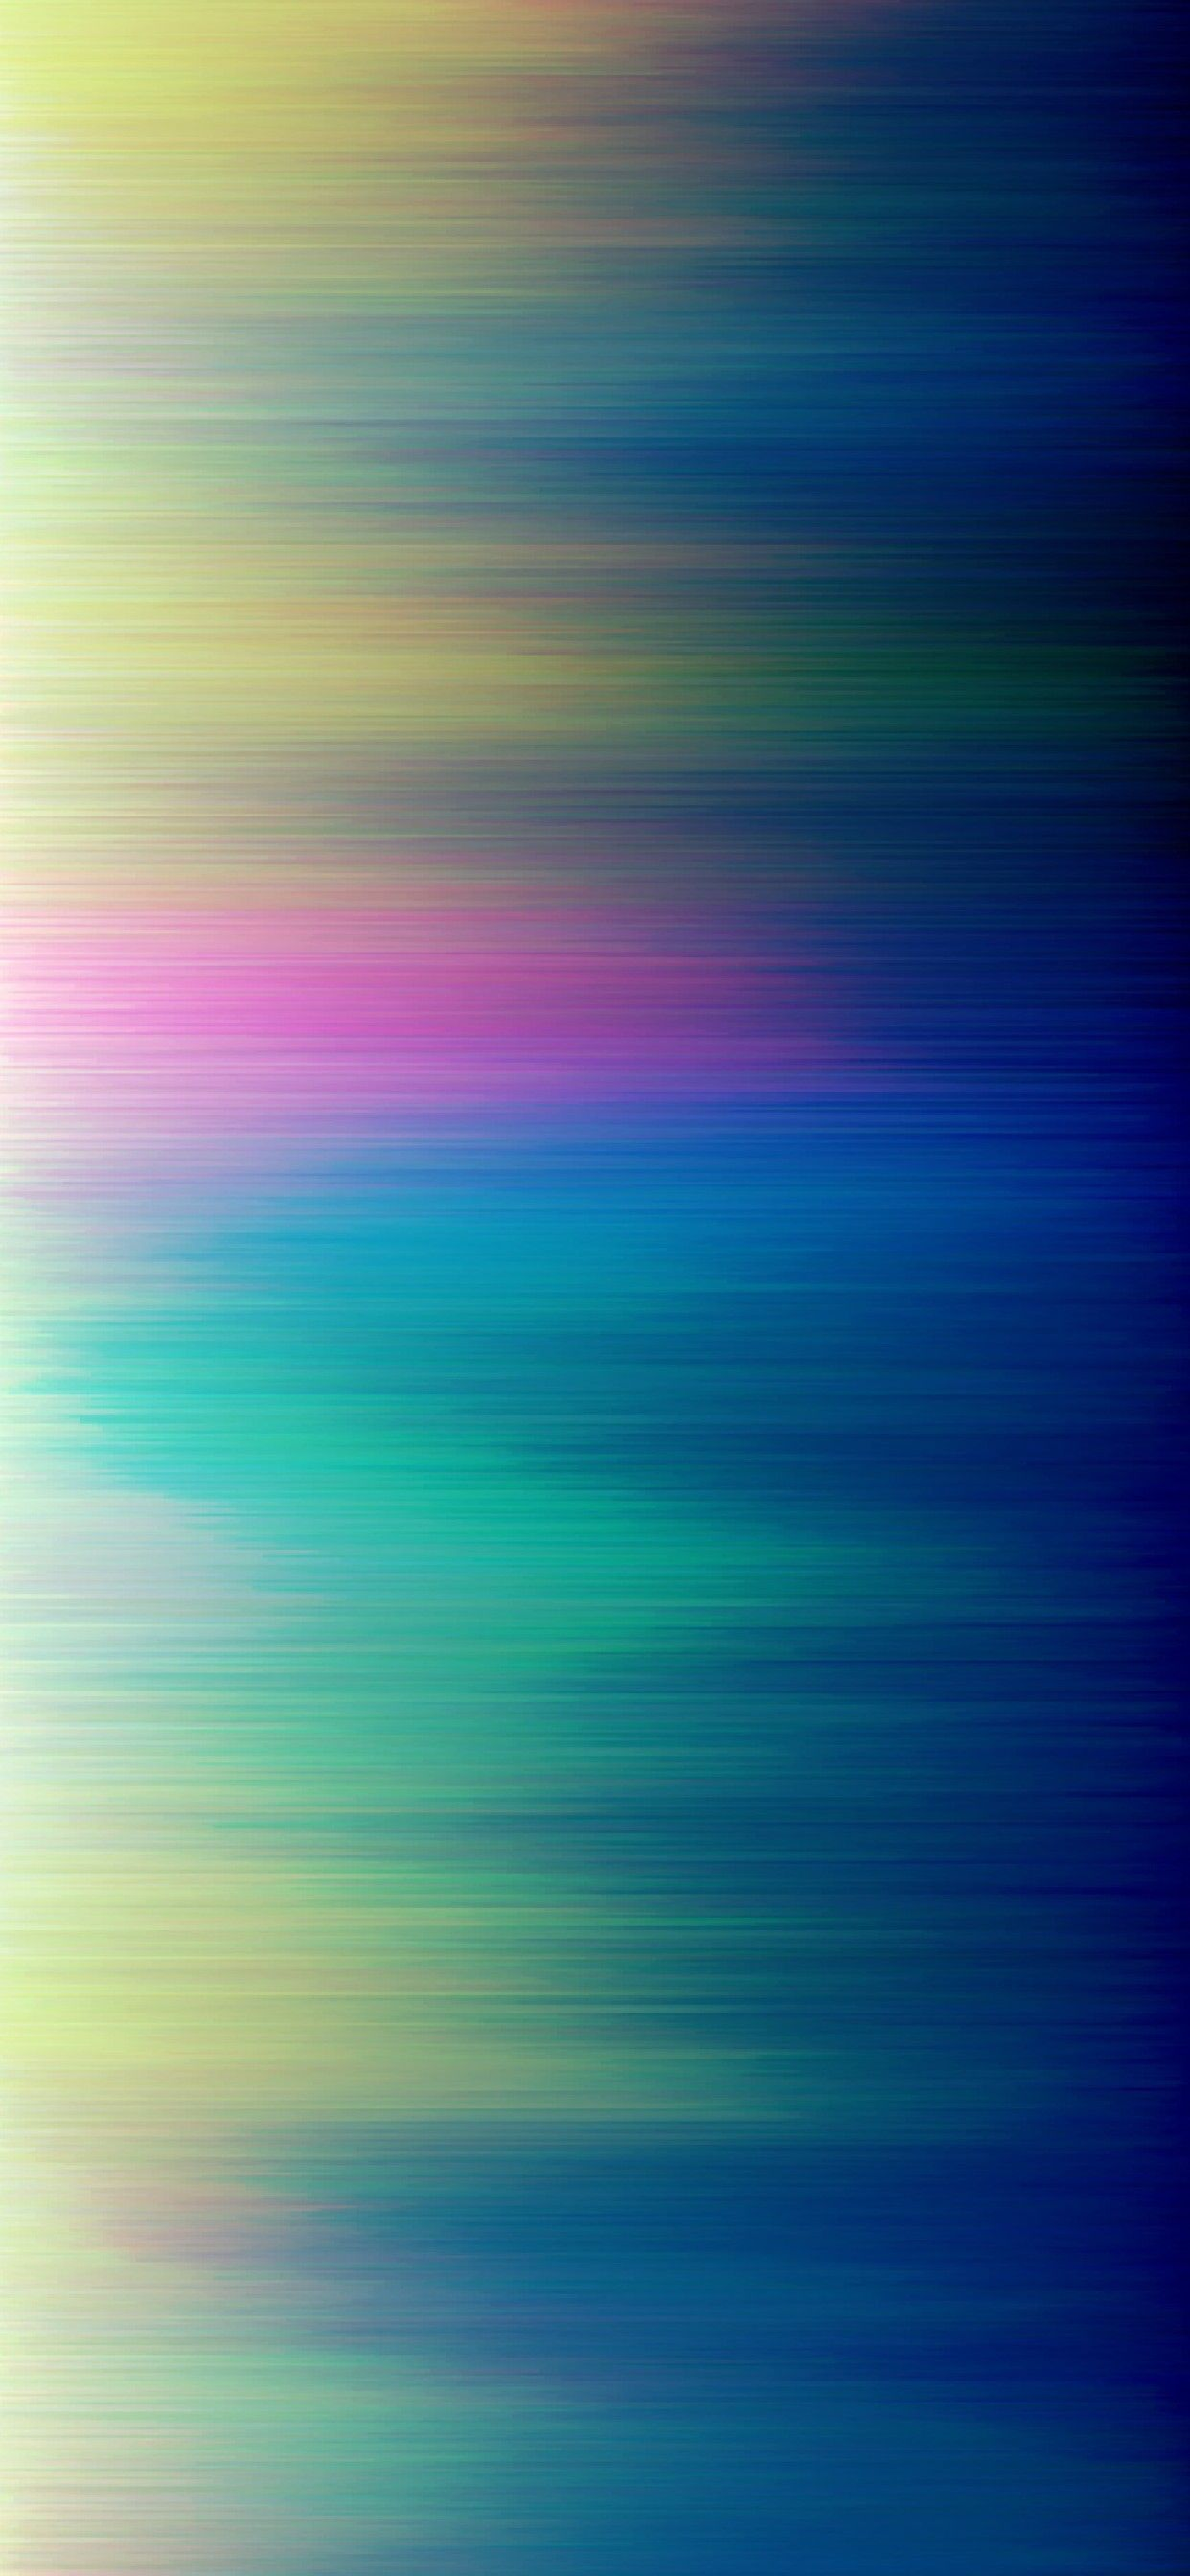 Lg Mobile Abstract Wallpaper 1242x2688 Abstract Cute Mobile Wallpapers Rainbow Wallpaper